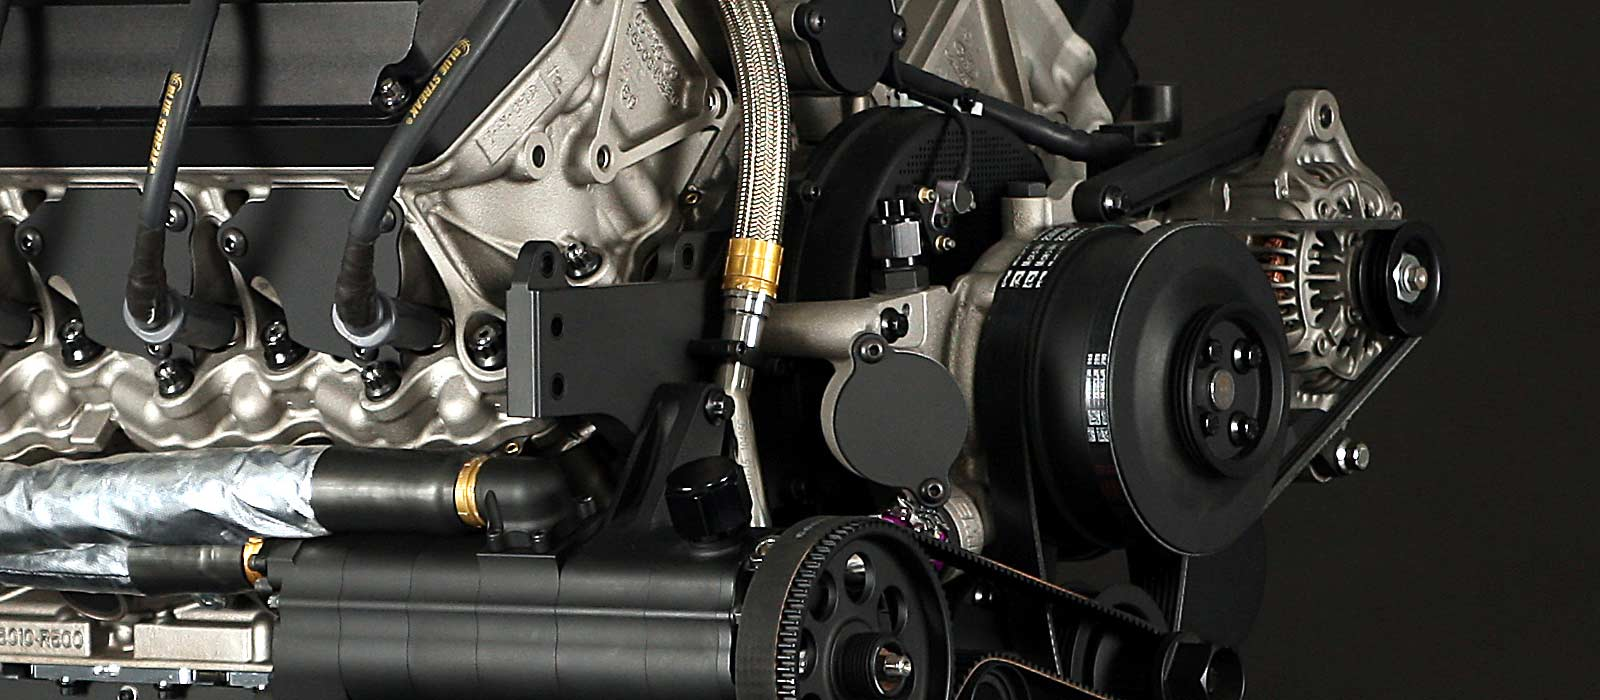 Gas vs. Diesel Engines: What's the Difference?